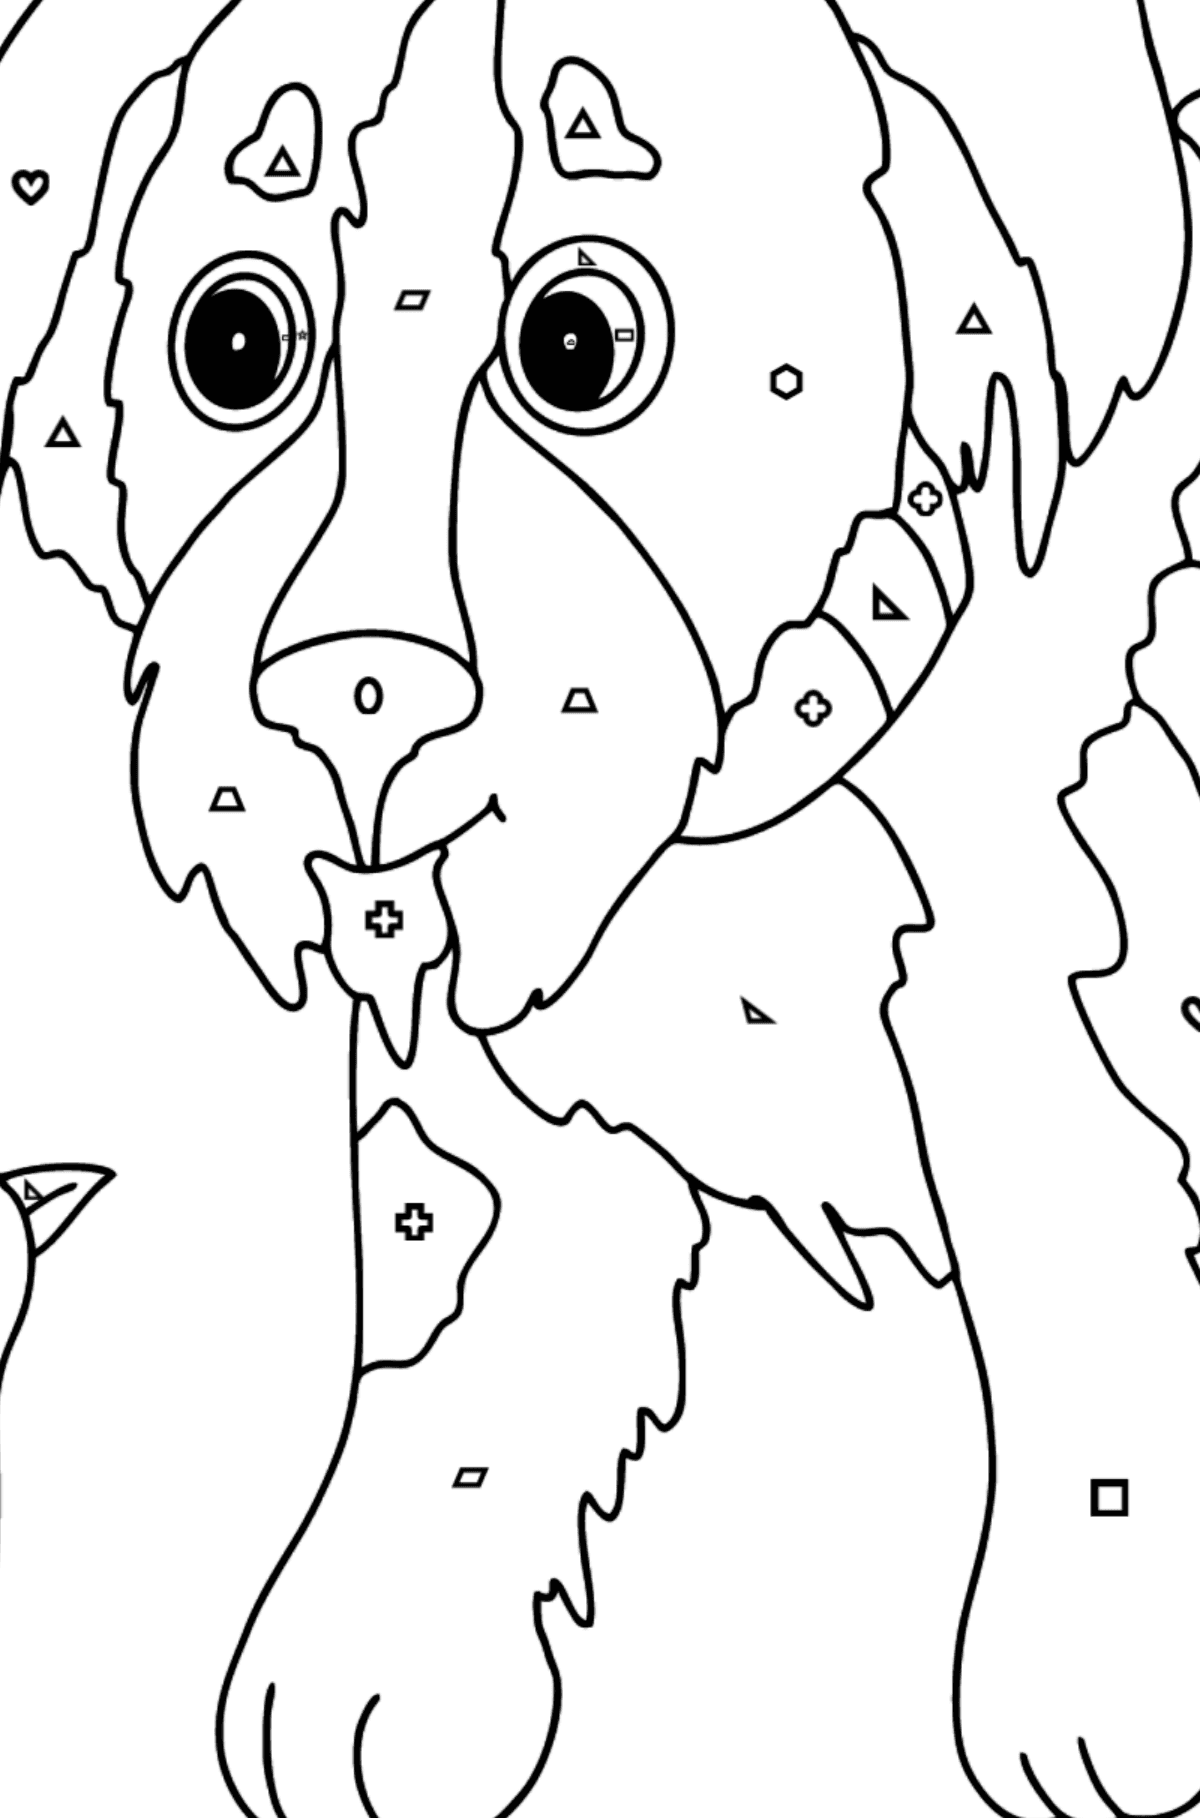 Coloring Page - A Dog is Playing with a Bird - Coloring by Geometric Shapes for Kids